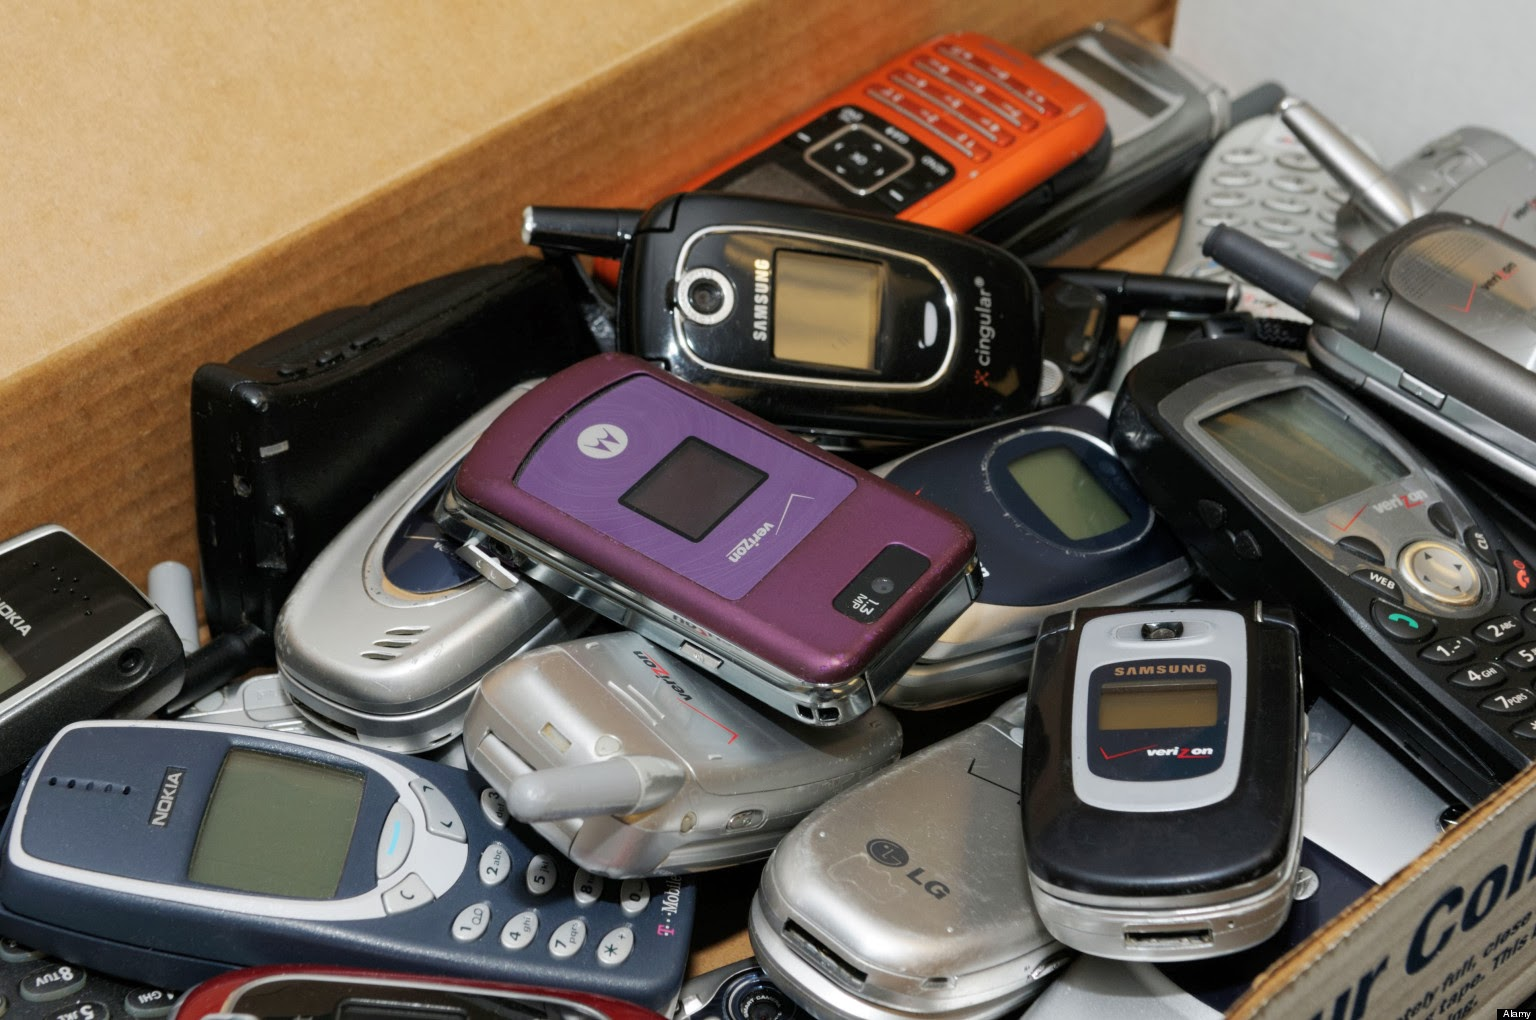 Free Cell Phones For Low Income Adults